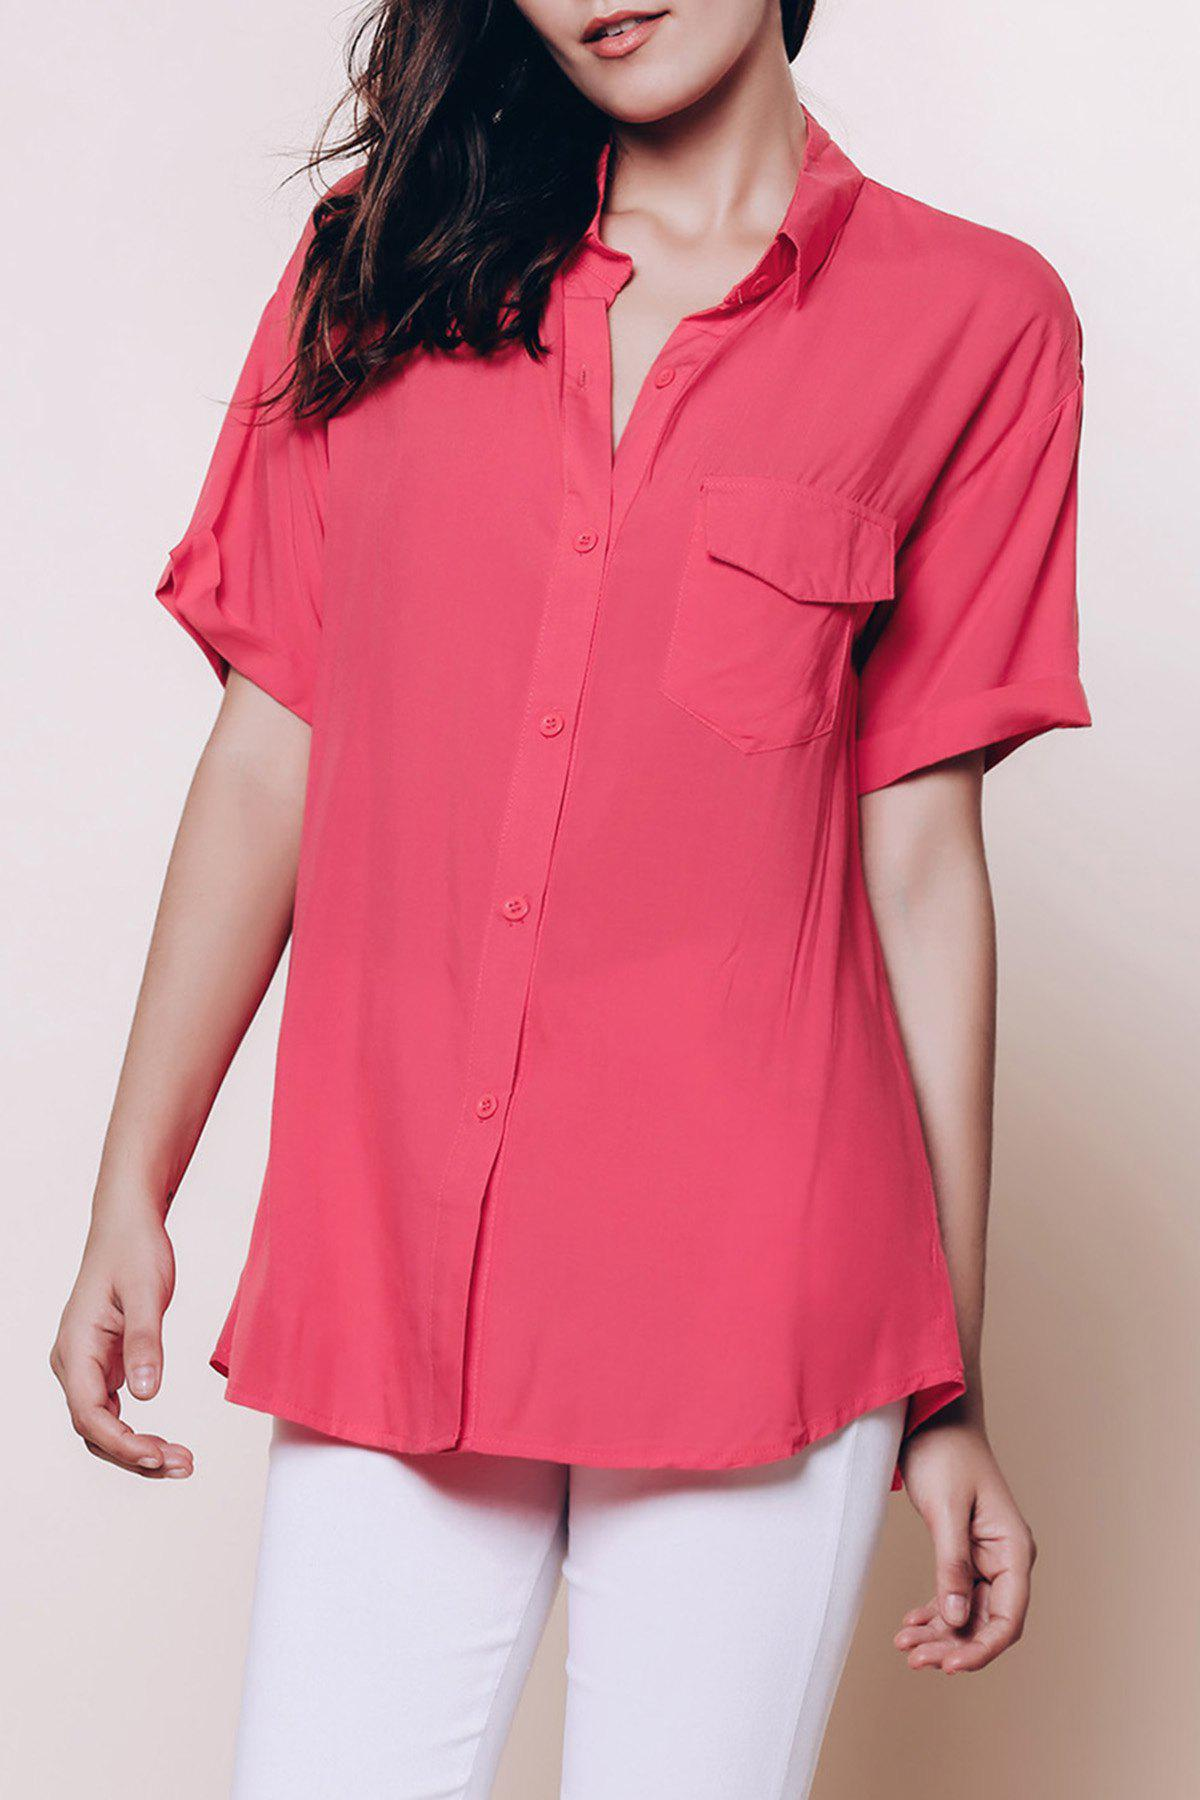 Chic Short Sleeve Pure Color Shirt For Women - BRICK RED M